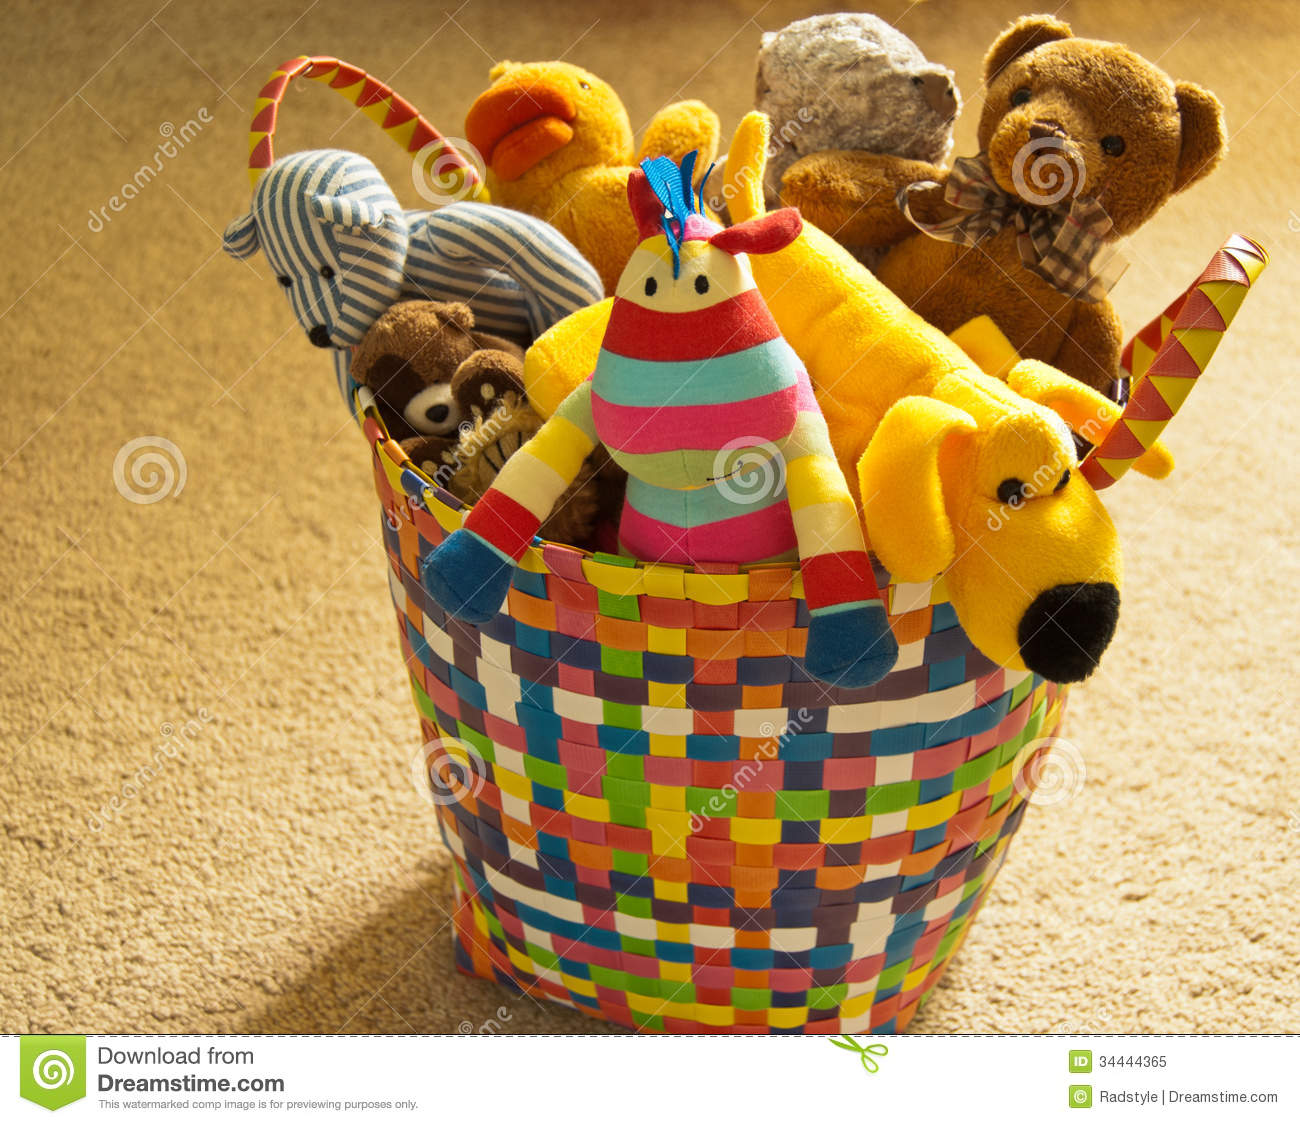 A Ton Of Rooms With Colorful Toys: Colorful Basket With Plush Toys Stock Image